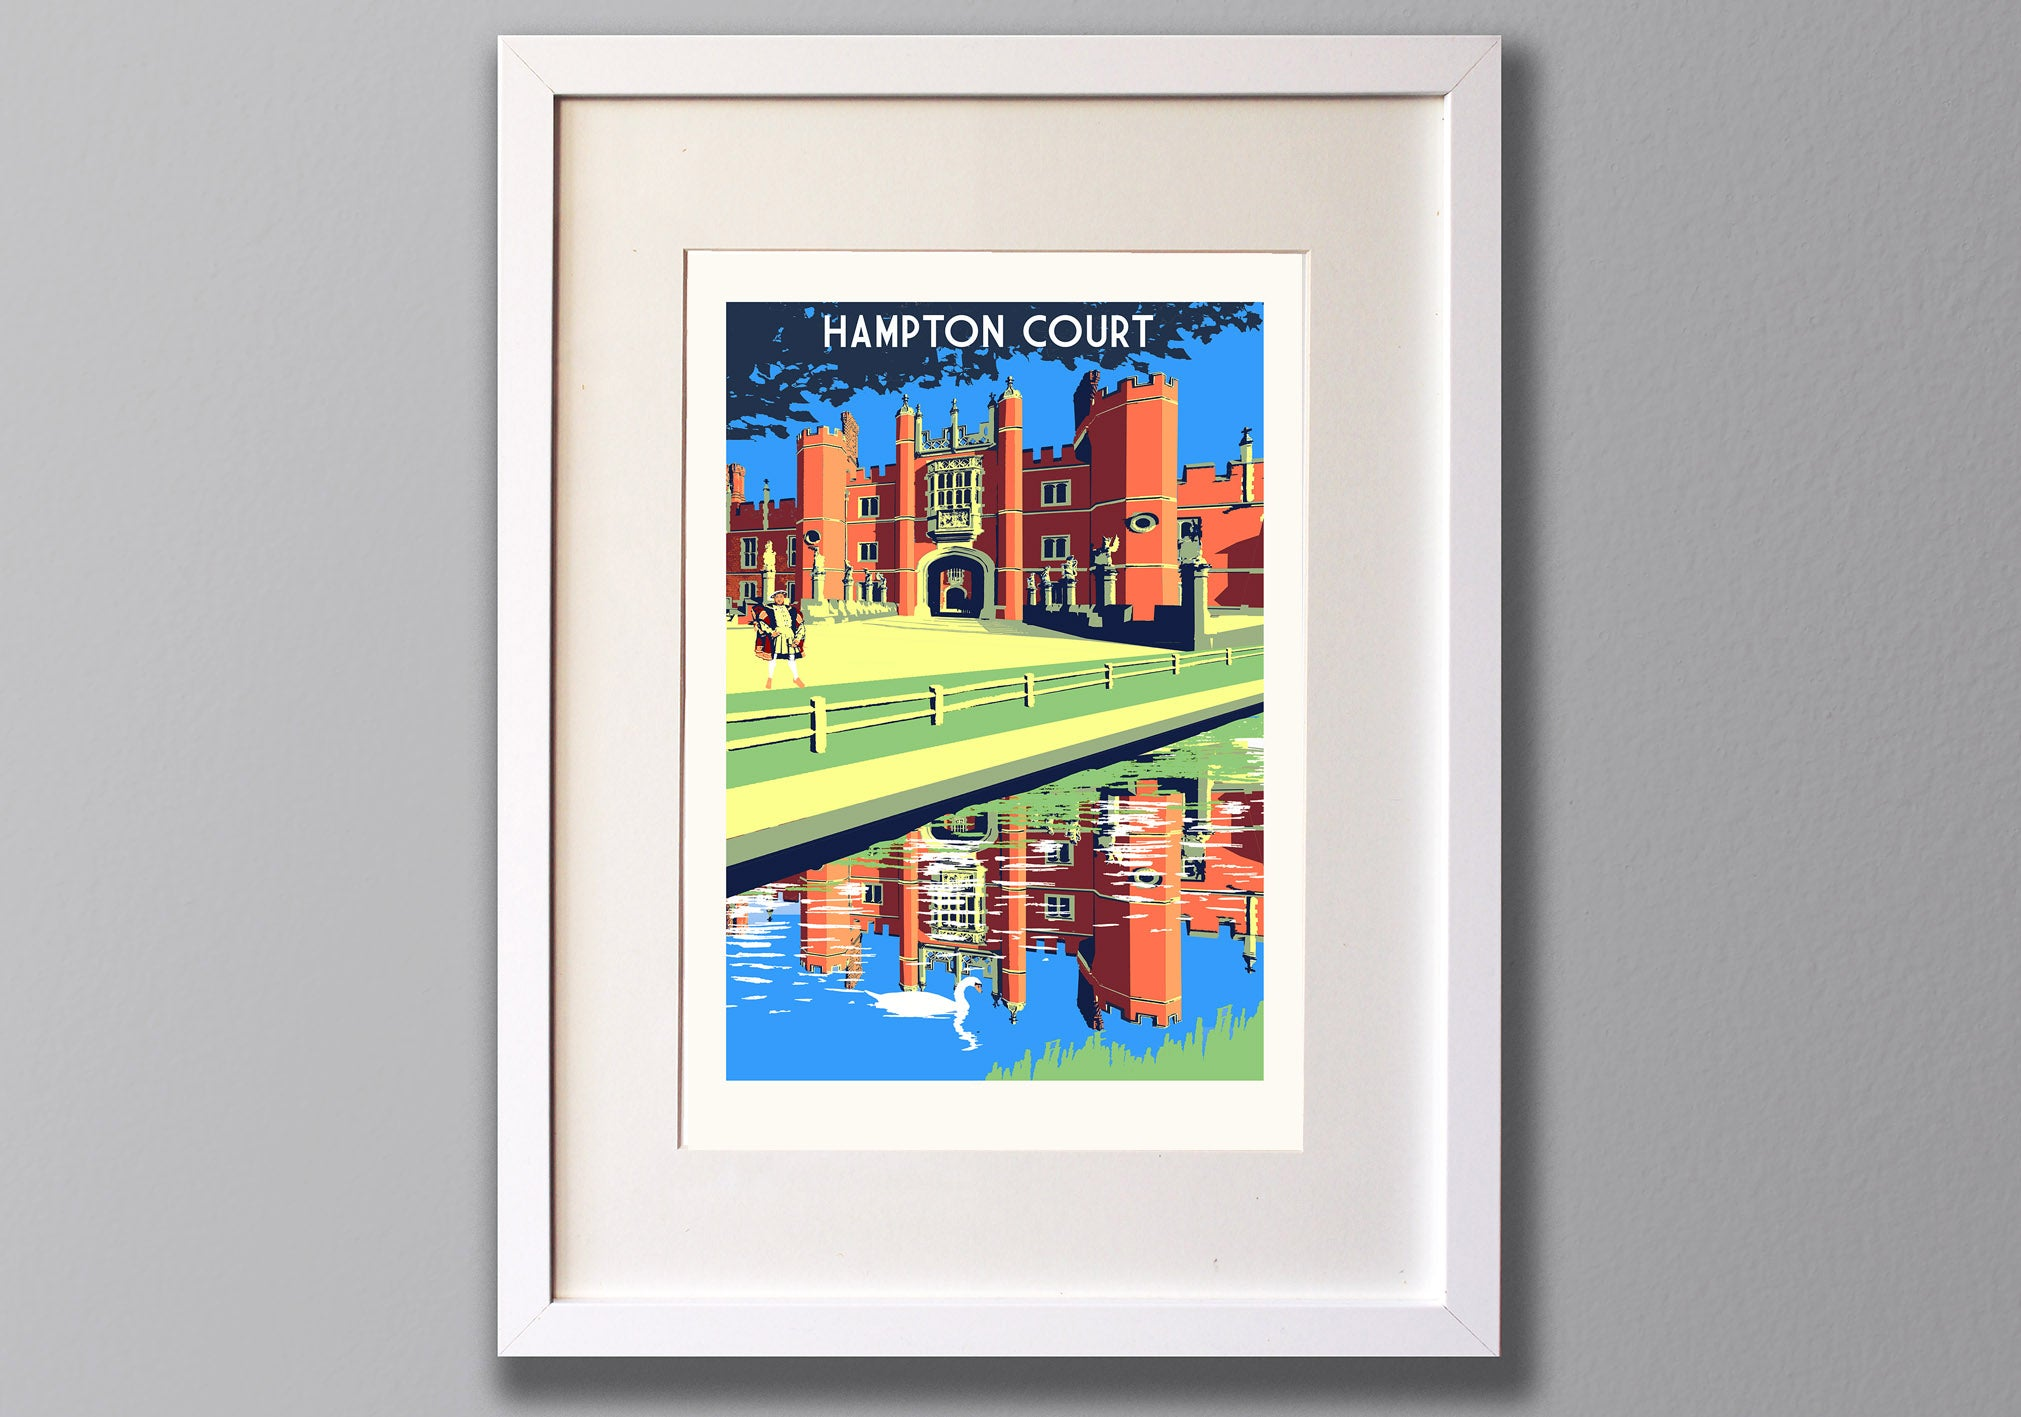 Hampton Court Screen Print, A3 Location Art Illustration